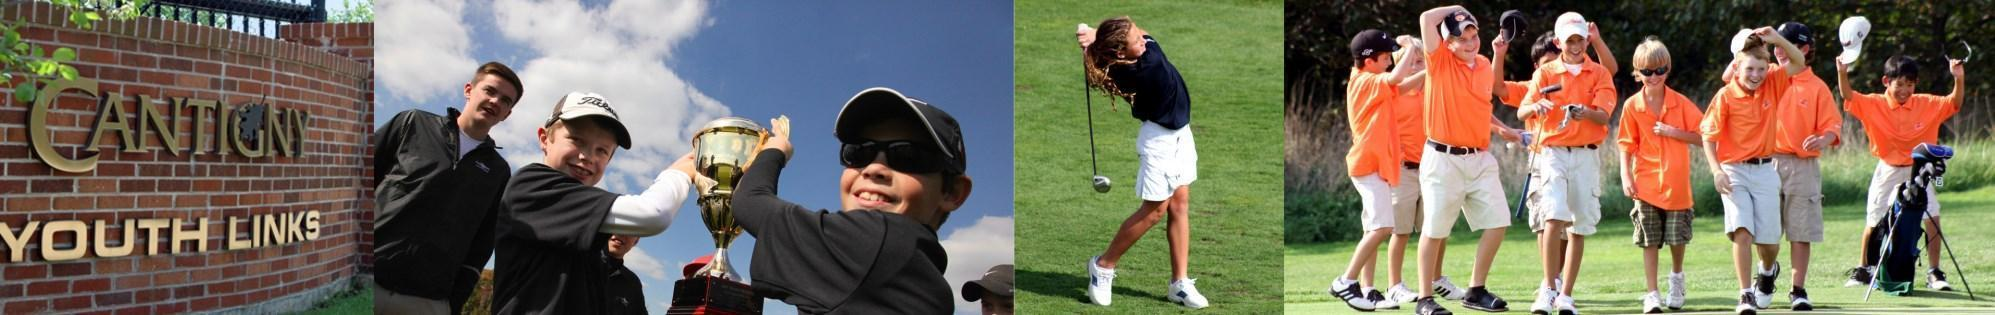 Cantigny Youth Links website header images